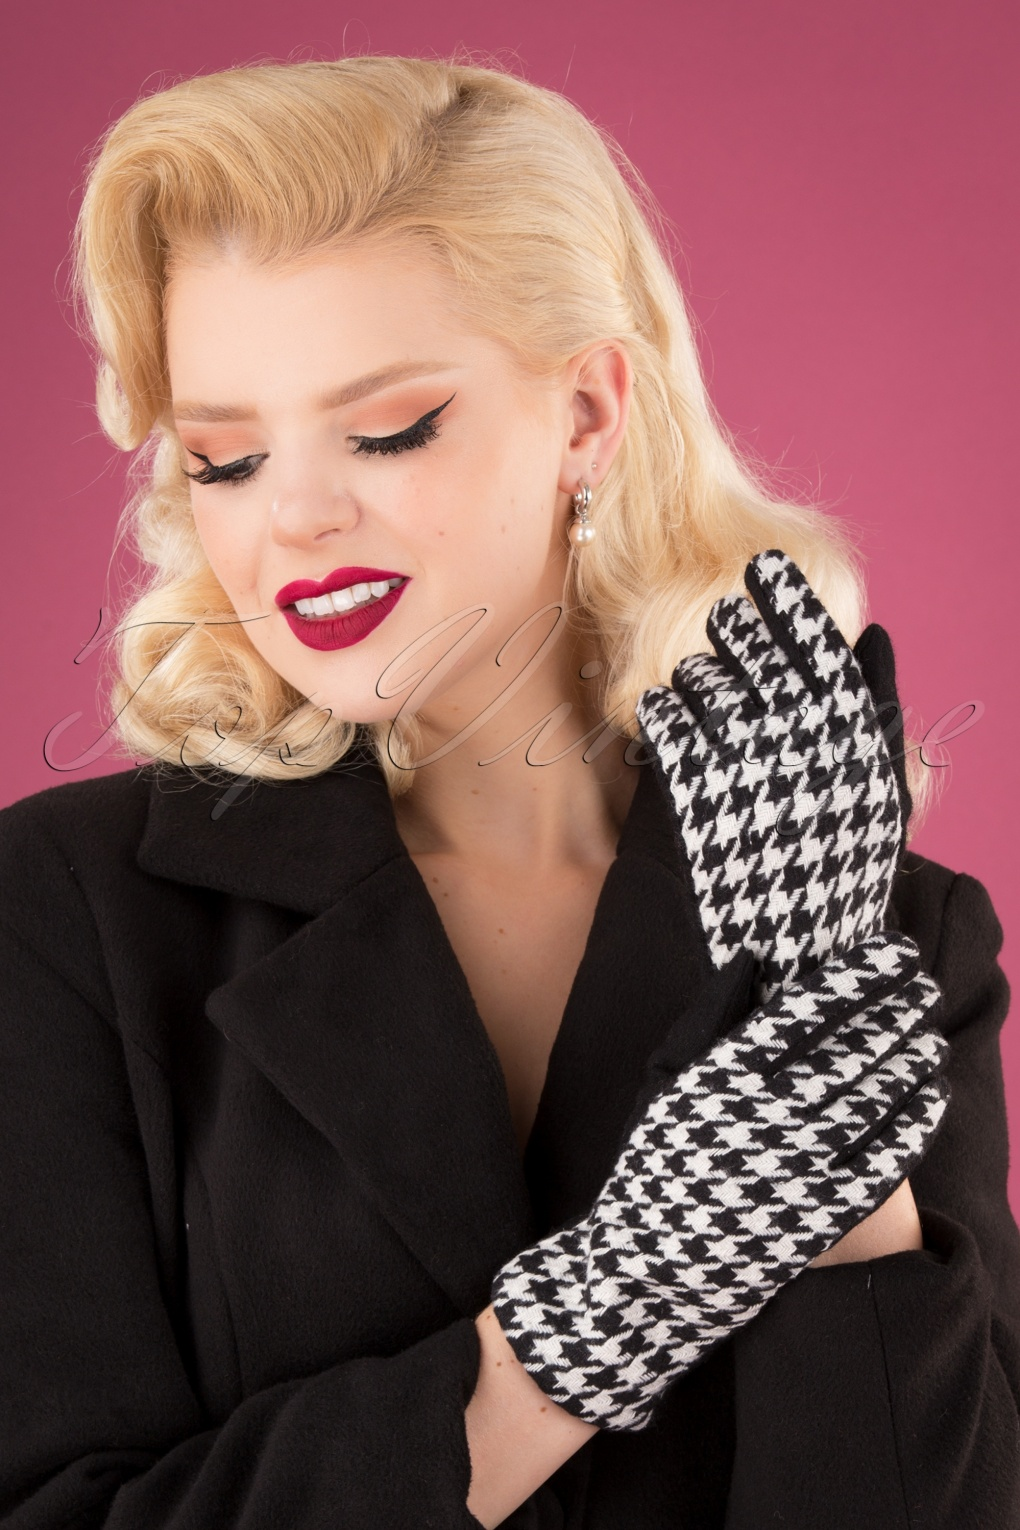 Vintage Style Gloves- Long, Wrist, Evening, Day, Leather, Lace 50s Houndstooth Gloves in Black and White £14.83 AT vintagedancer.com